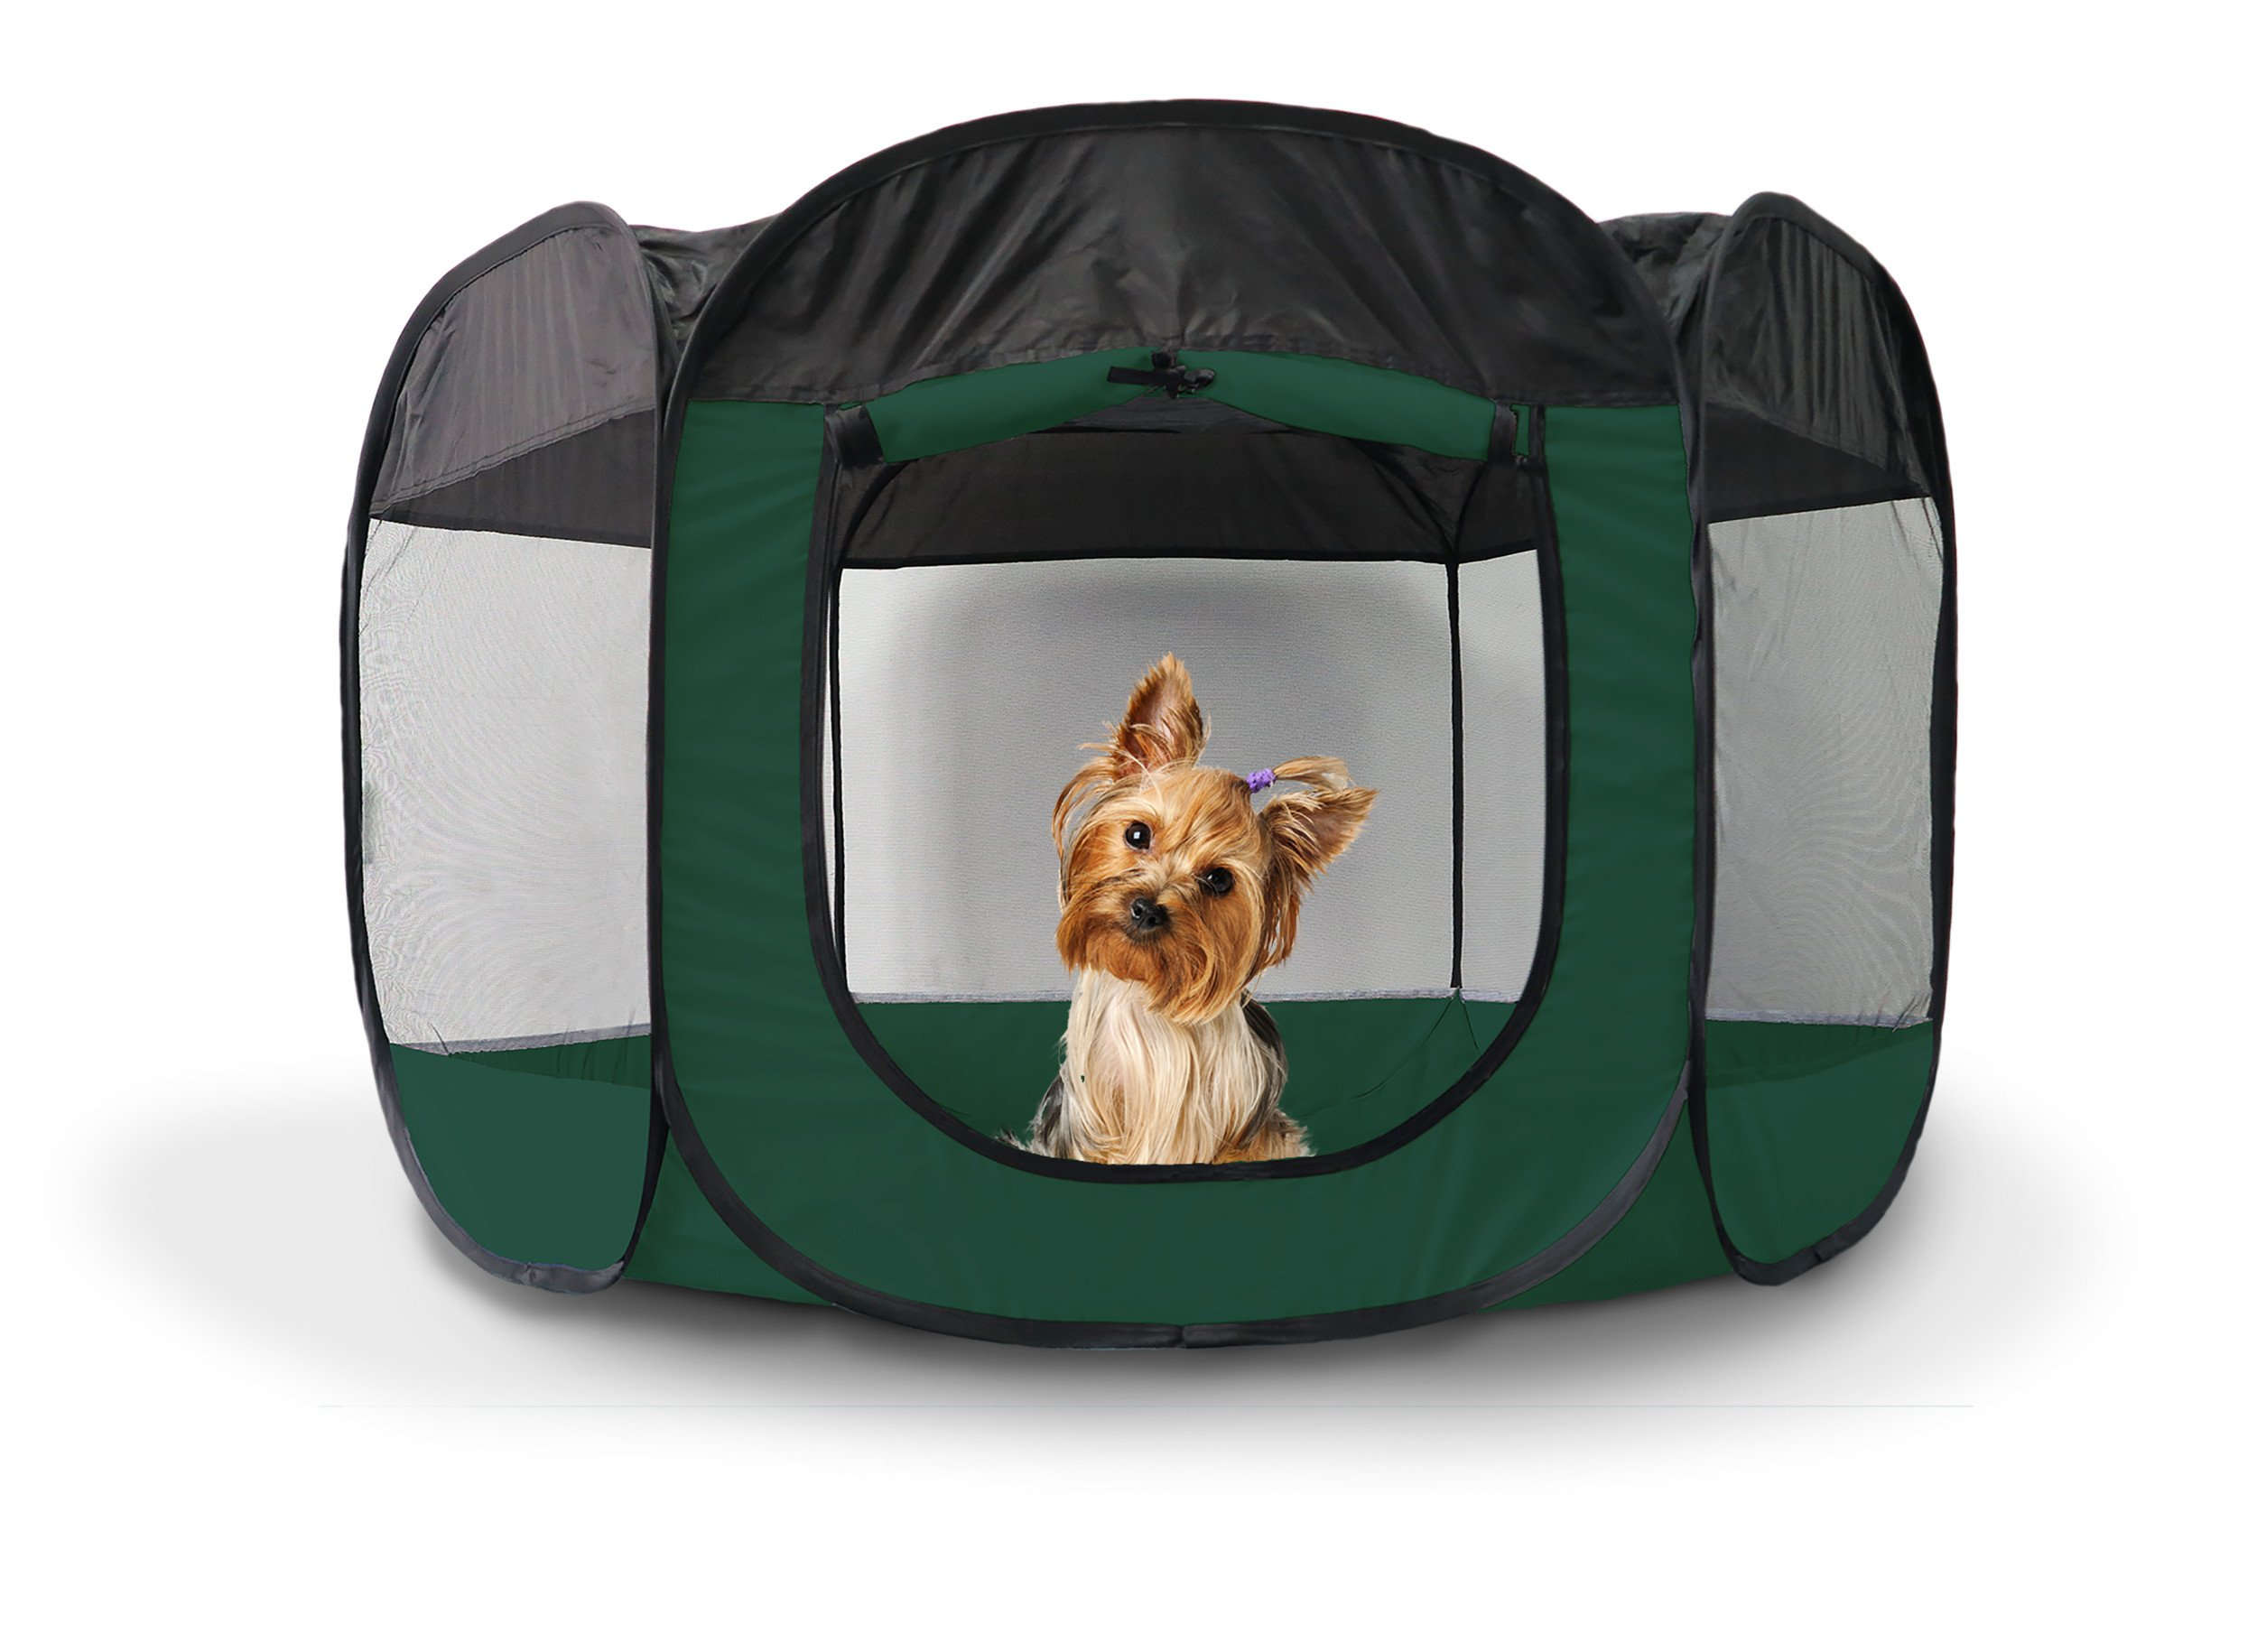 39x23.5 Inch Hunter Green Small Portable Pet Play-pen, Open-air Mesh Screened Windows Deluxe 360 Degree View Zippered Side Panel Entrance Removable Top 6 Side Panels Tie-up, Durable Metal Fabric by PH (Image #1)